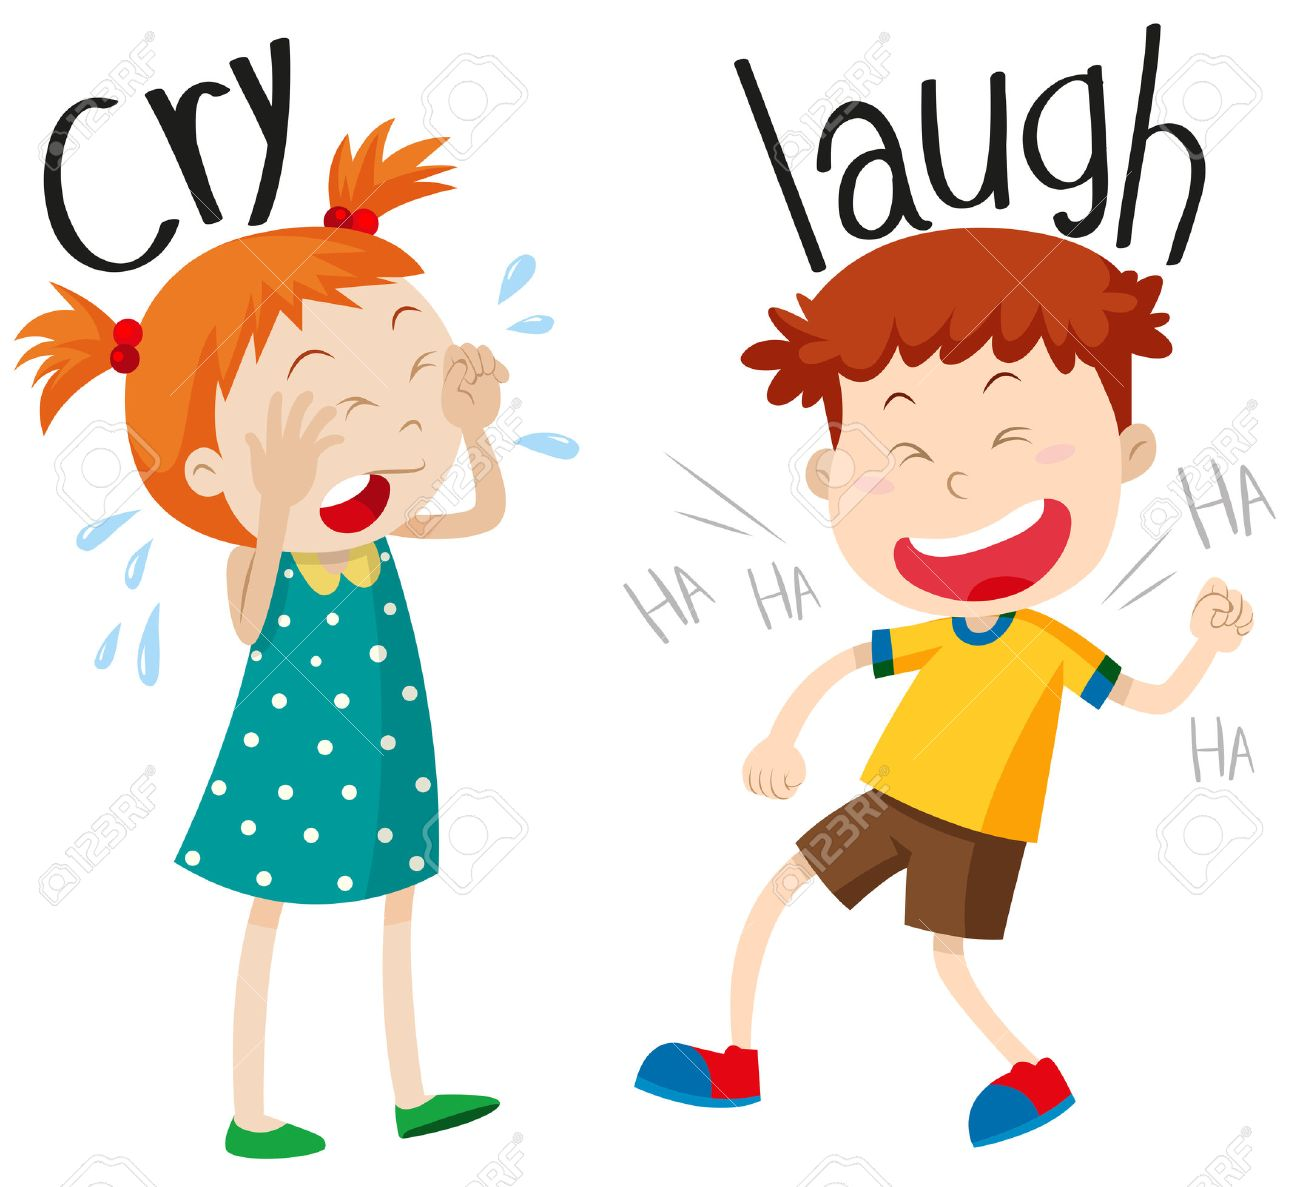 opposite adjectives cry and laugh illustration royalty free cliparts rh 123rf com laugh clipart black and white laugh clipart png